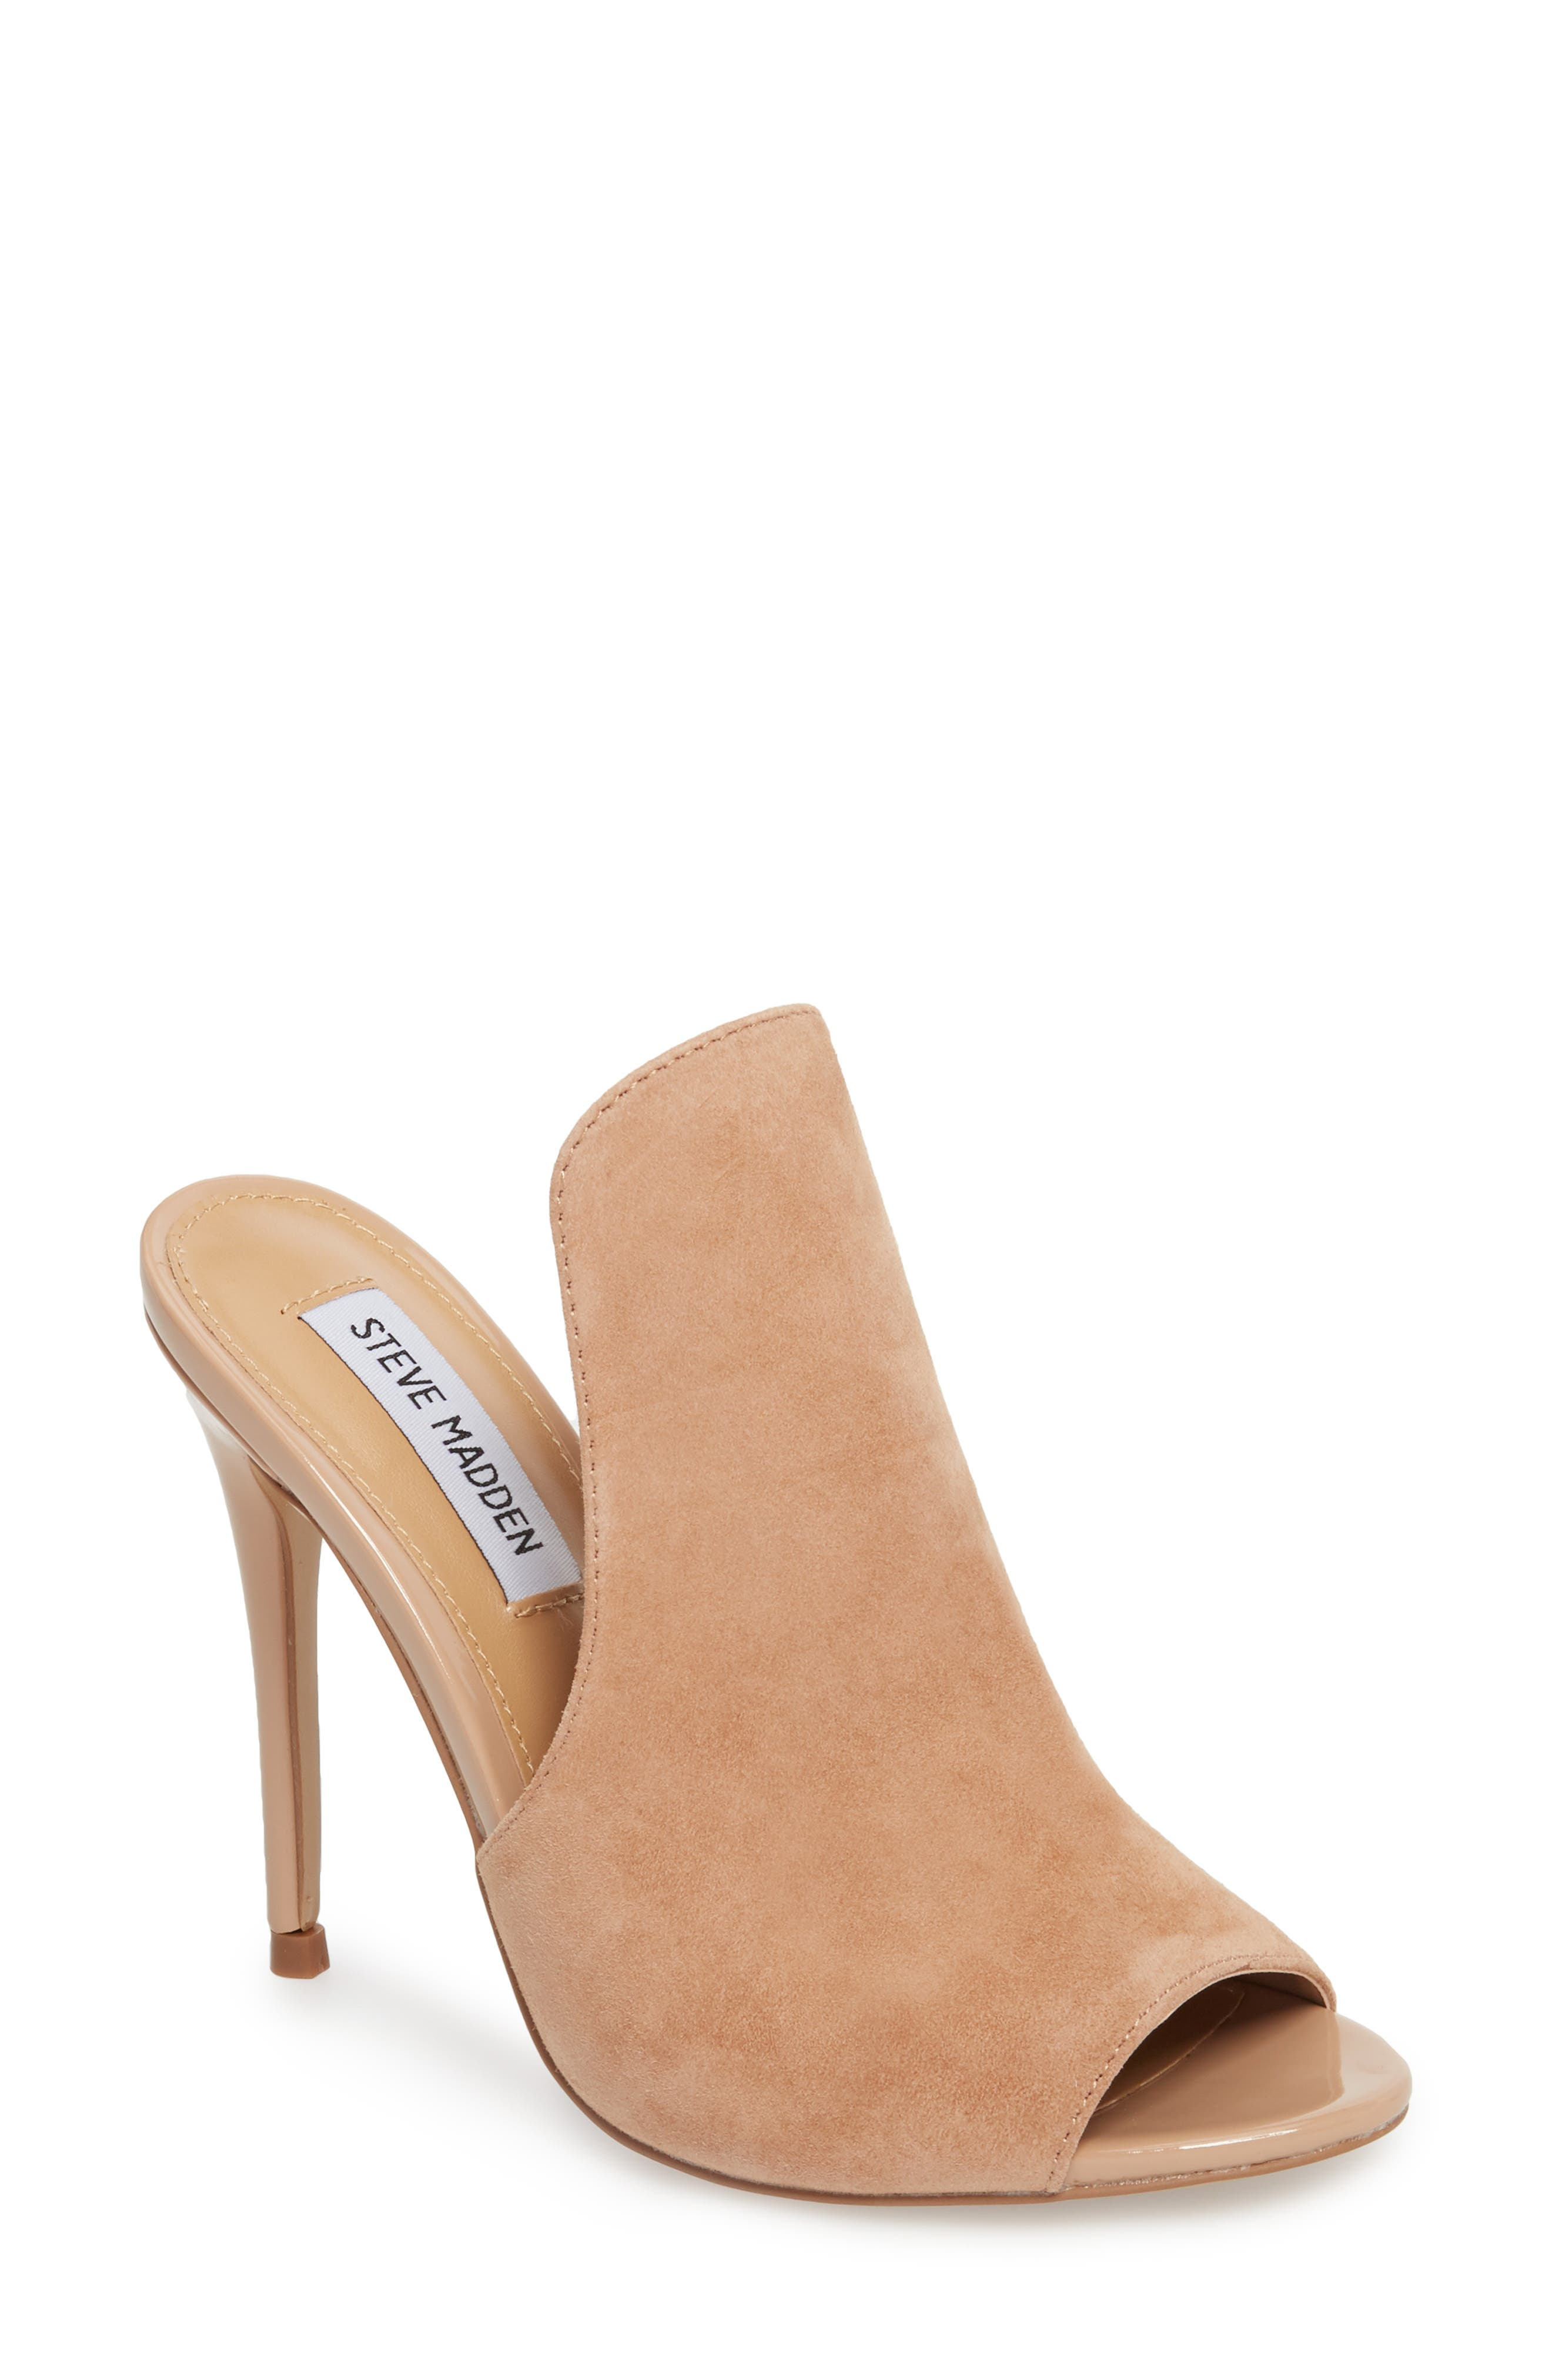 Sinful Sandal,                             Main thumbnail 1, color,                             Nude Suede